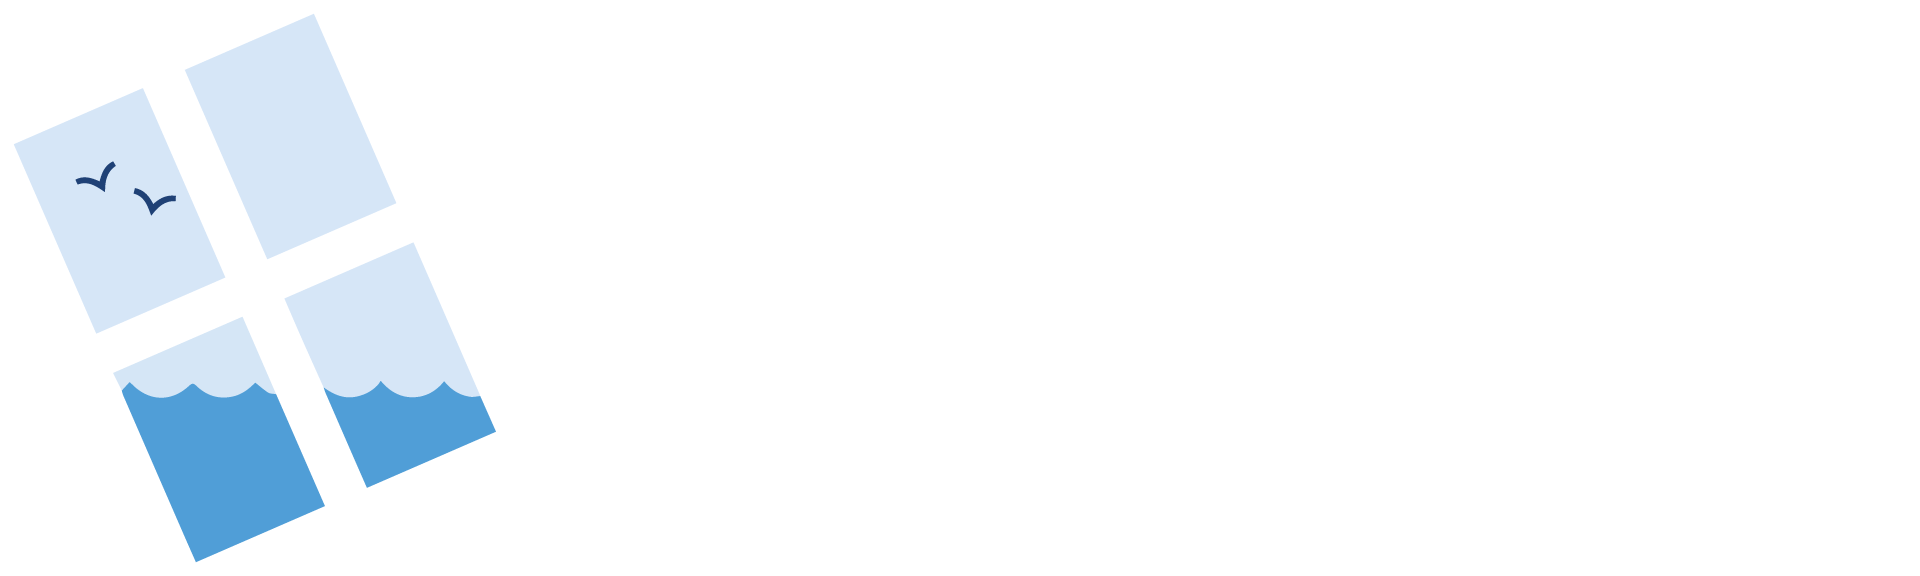 Harbourside_WC_Logo.png